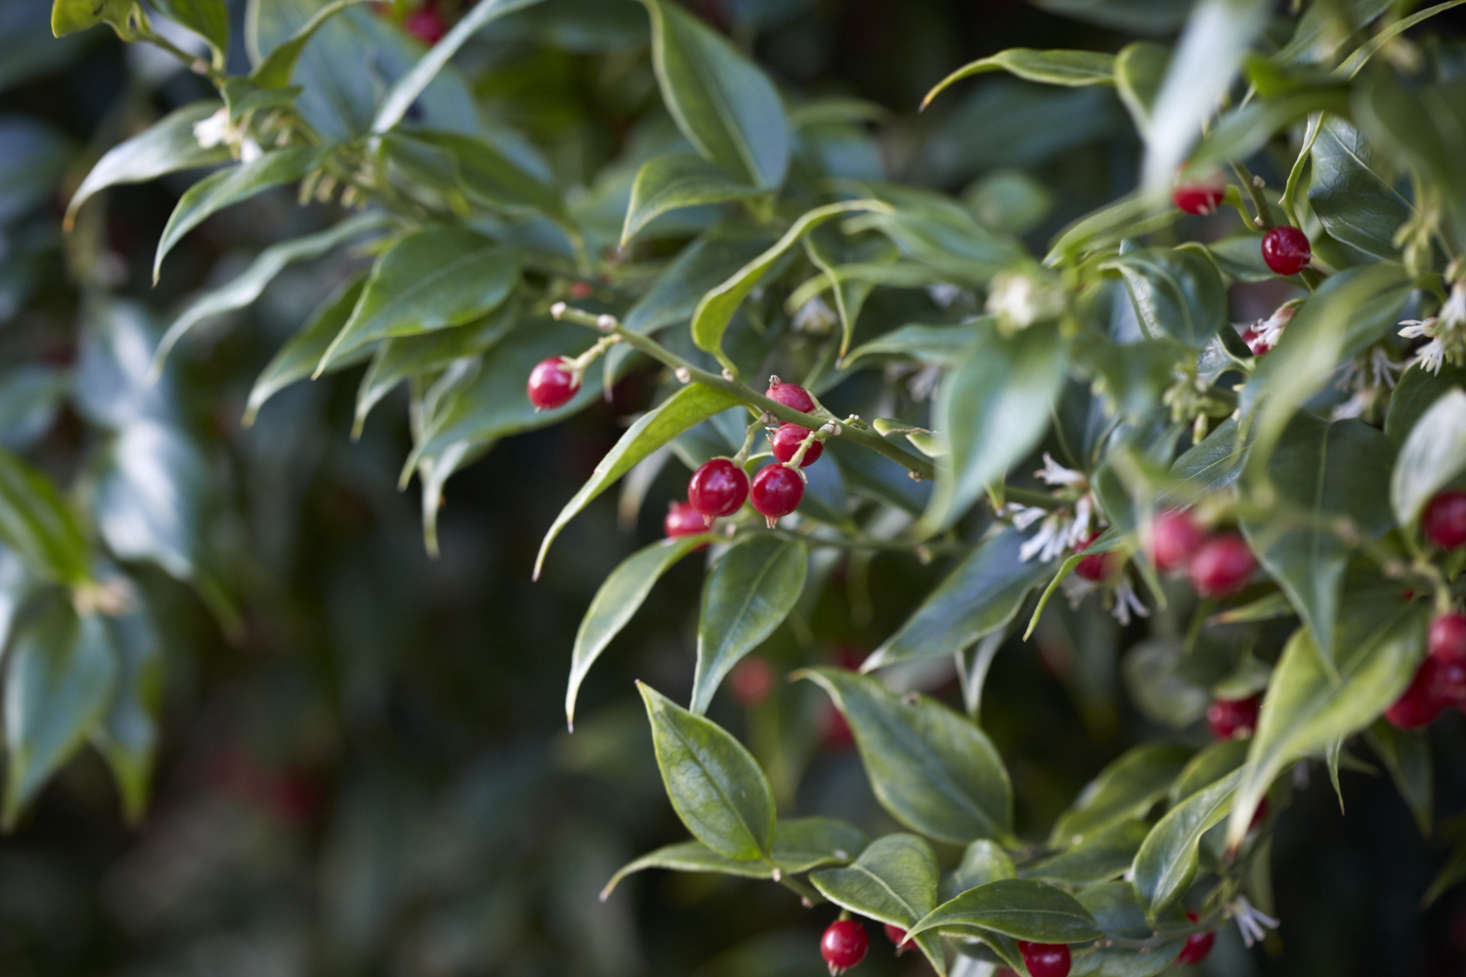 Red berries of Sarcococca ruscifolia var. chinensis.